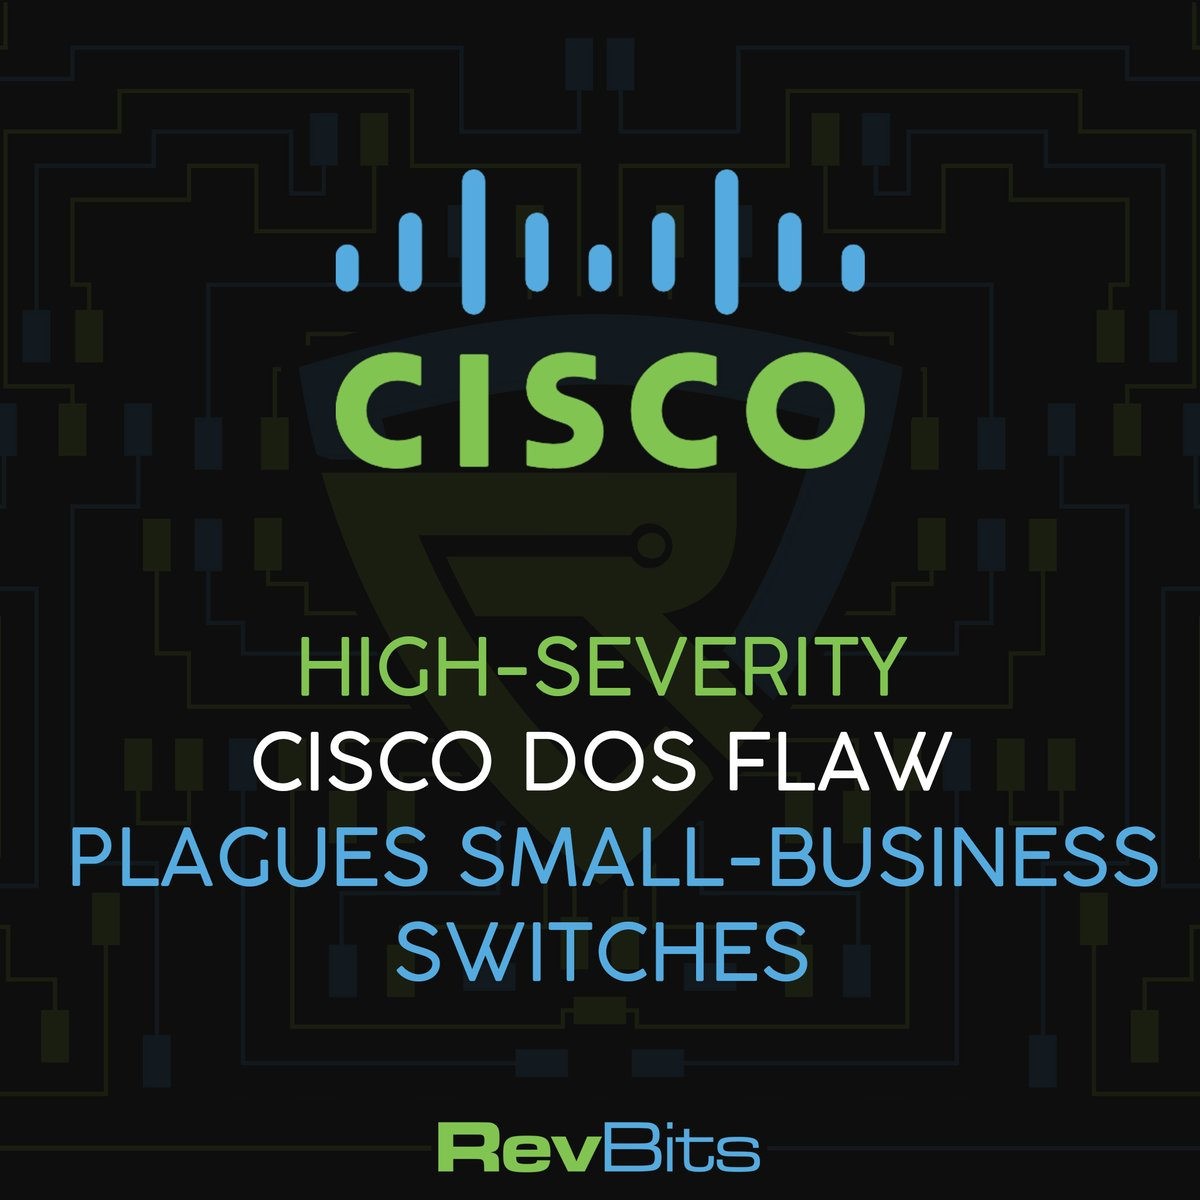 The vulnerability stems from the IPv6 packet processing engine in the switches.   https://threatpost.com/high-severity-cisco-dos-flaw-small-business-switches/158124/ …  #technology #cybersecurity #computerscience #geek #hacking #computer #kalilinux #programming #programmer #hack #hackers #hacks pic.twitter.com/9ZHwhmZWIx